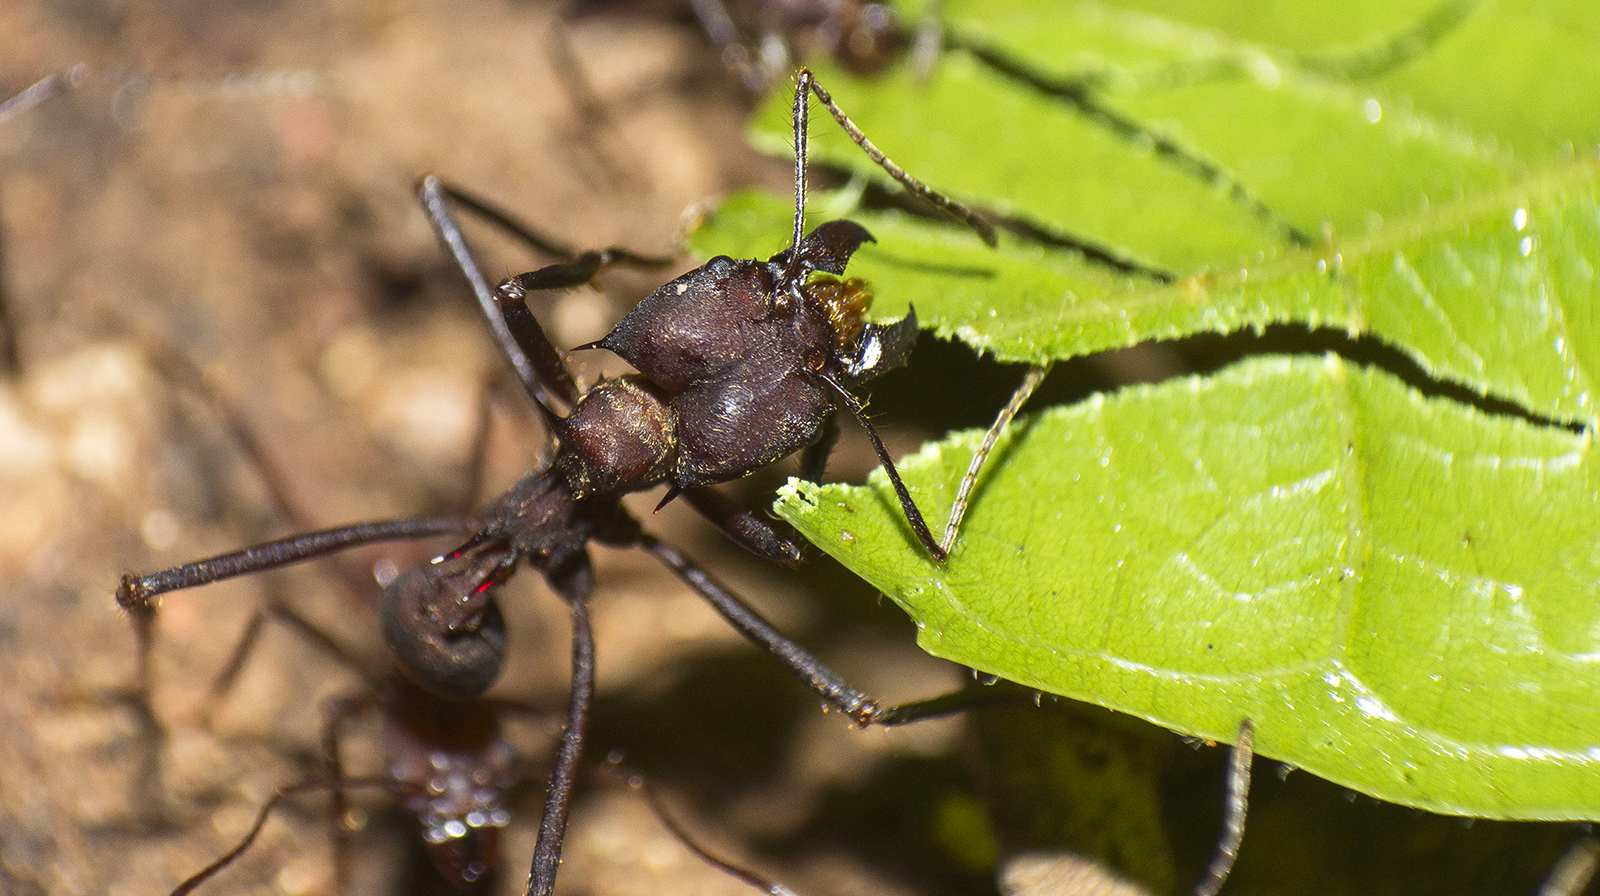 Leaf-cutter ant at work